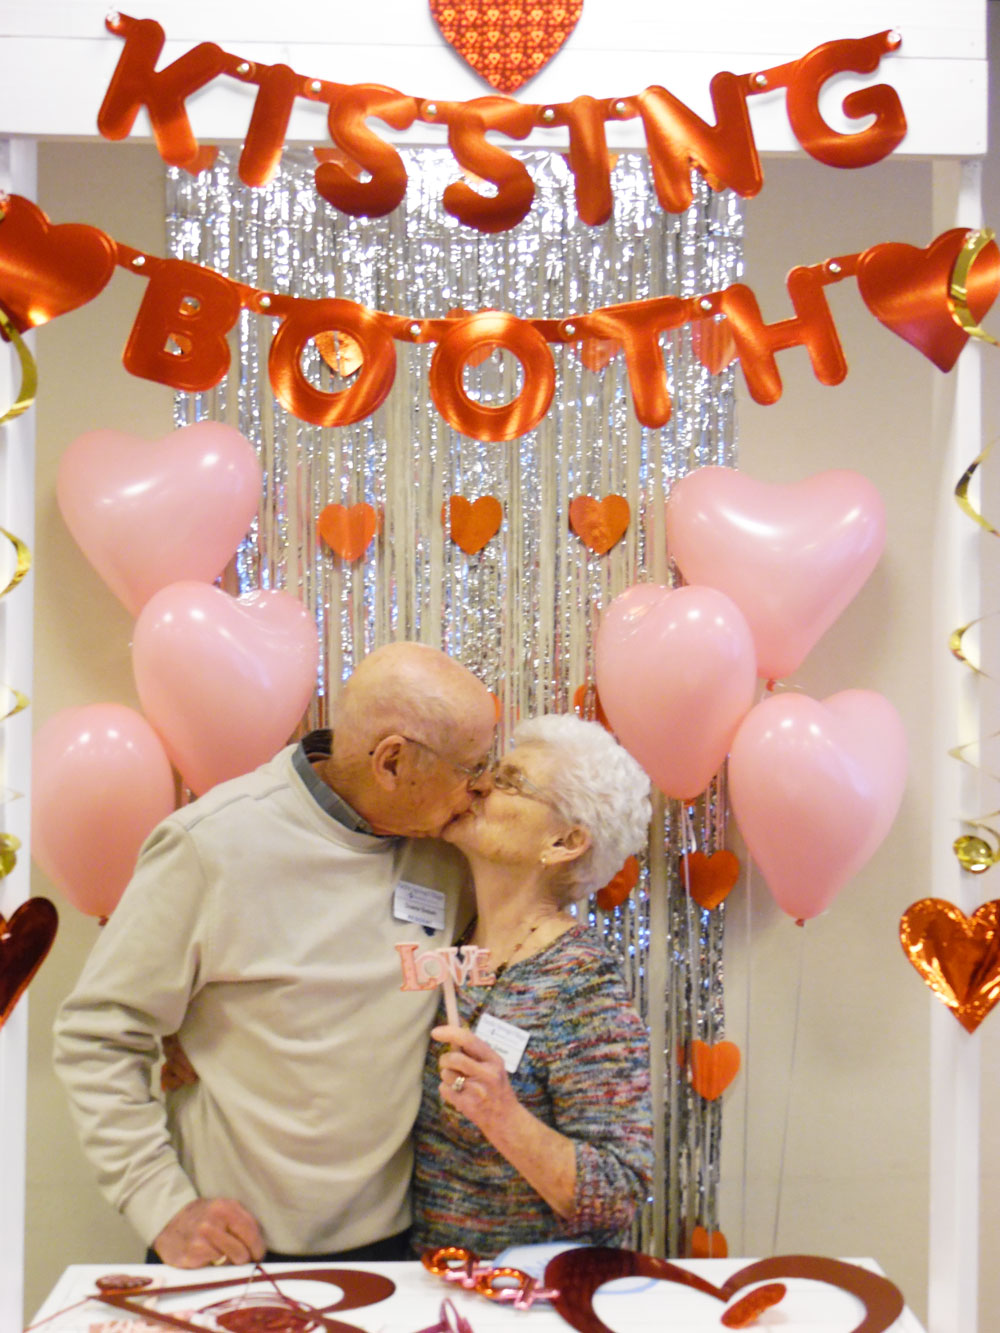 Residents get cozy in the Valentine's Day kissing booth at Pacific Springs Village